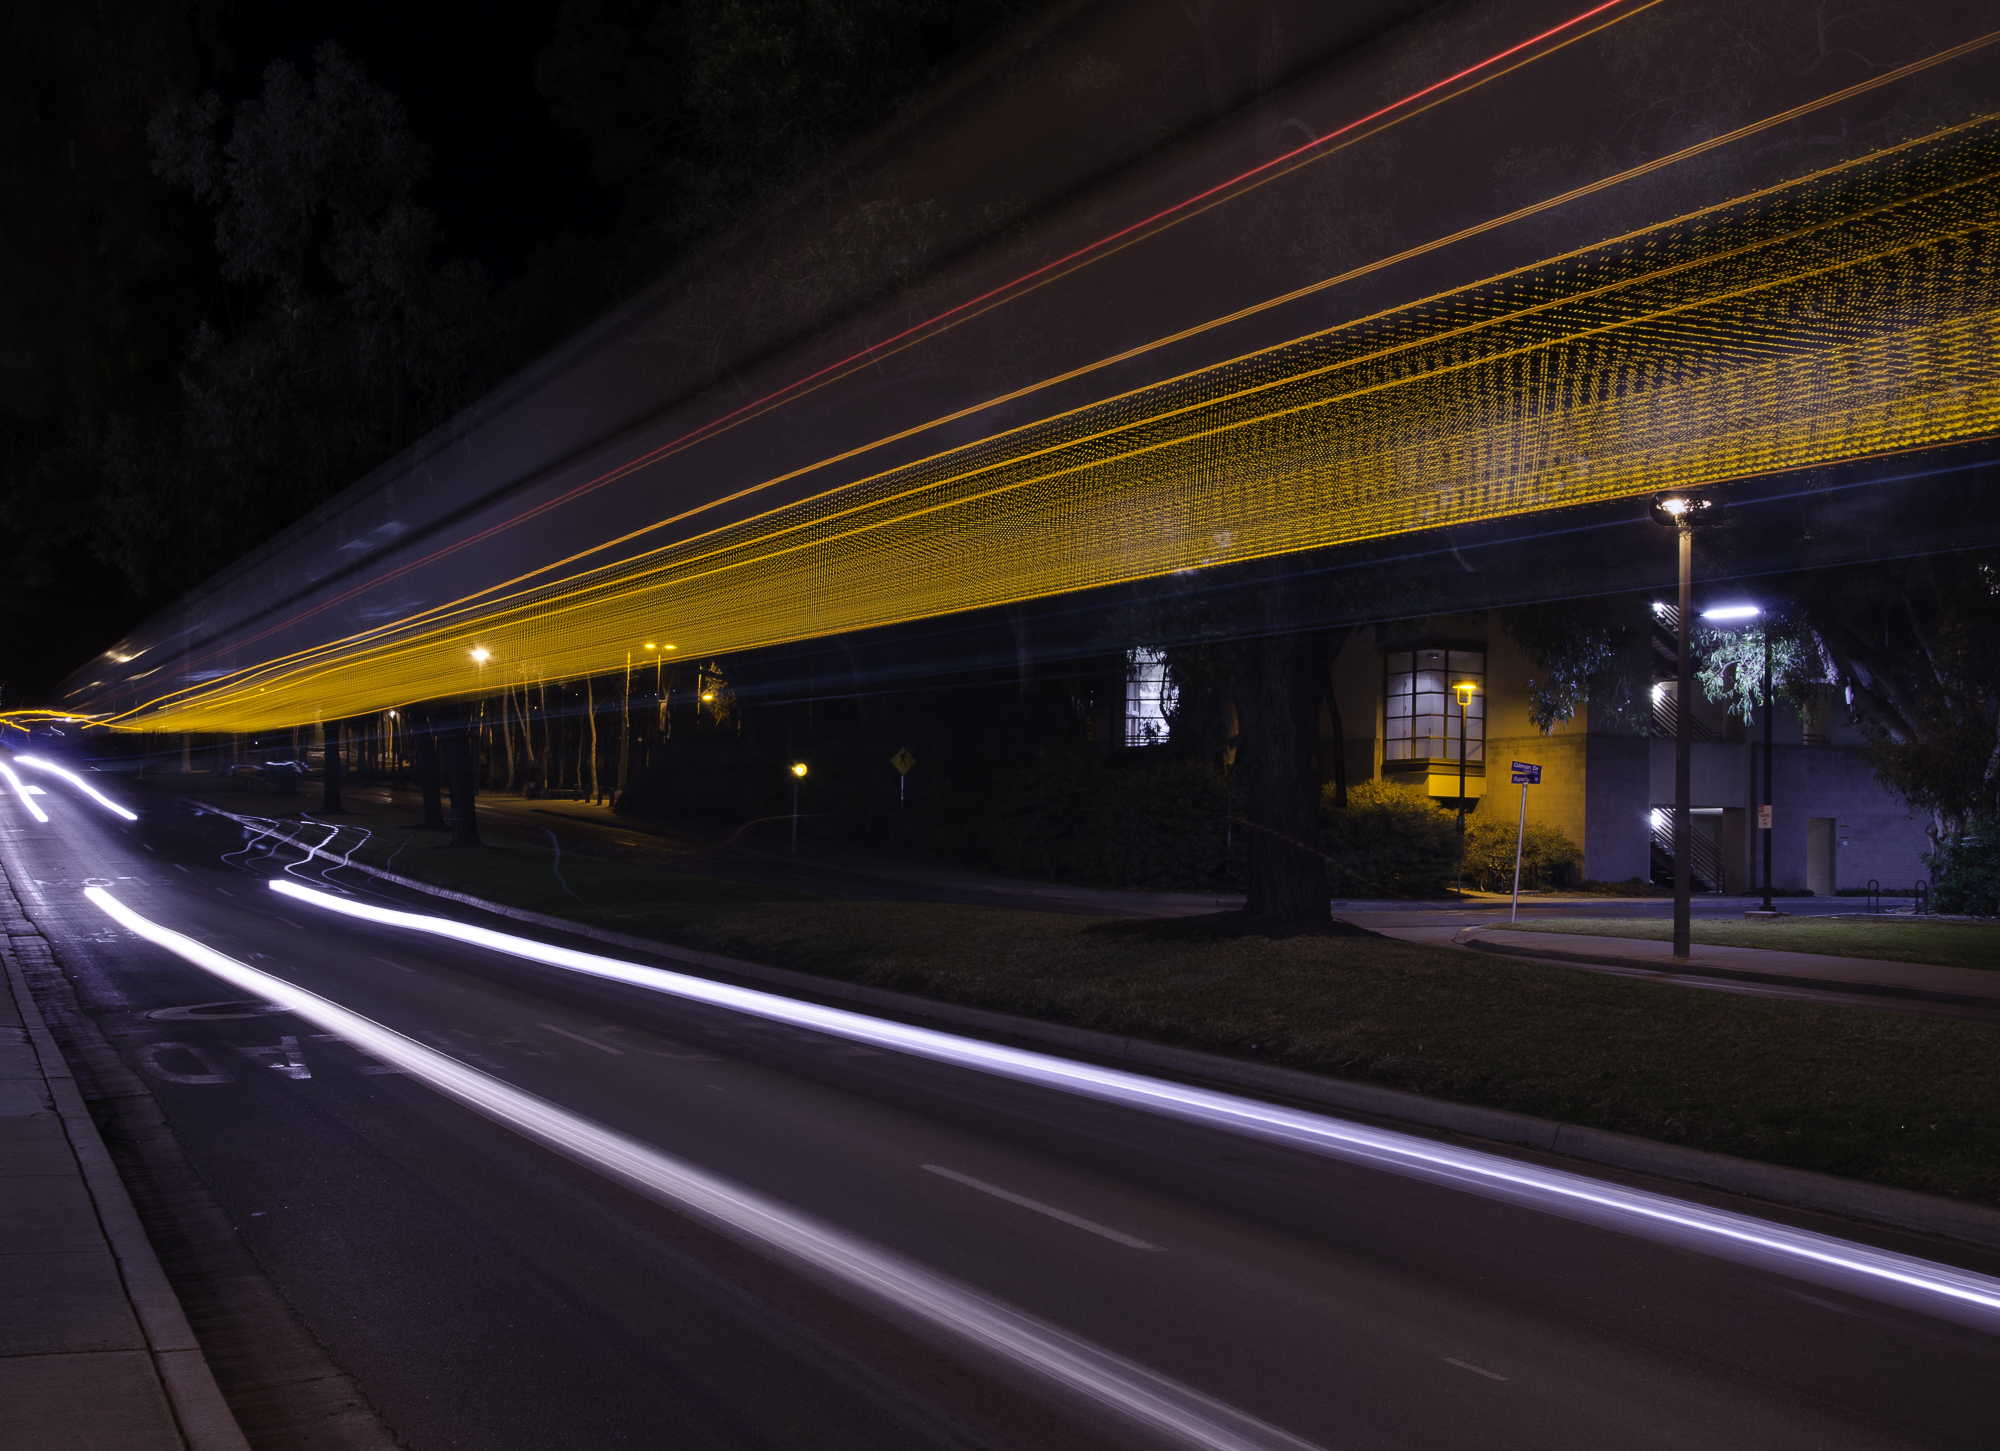 The shot was taken at around midnight with minimum vehicles on road. I took a long exposure  so that I can just capture the headlights of the bus !!